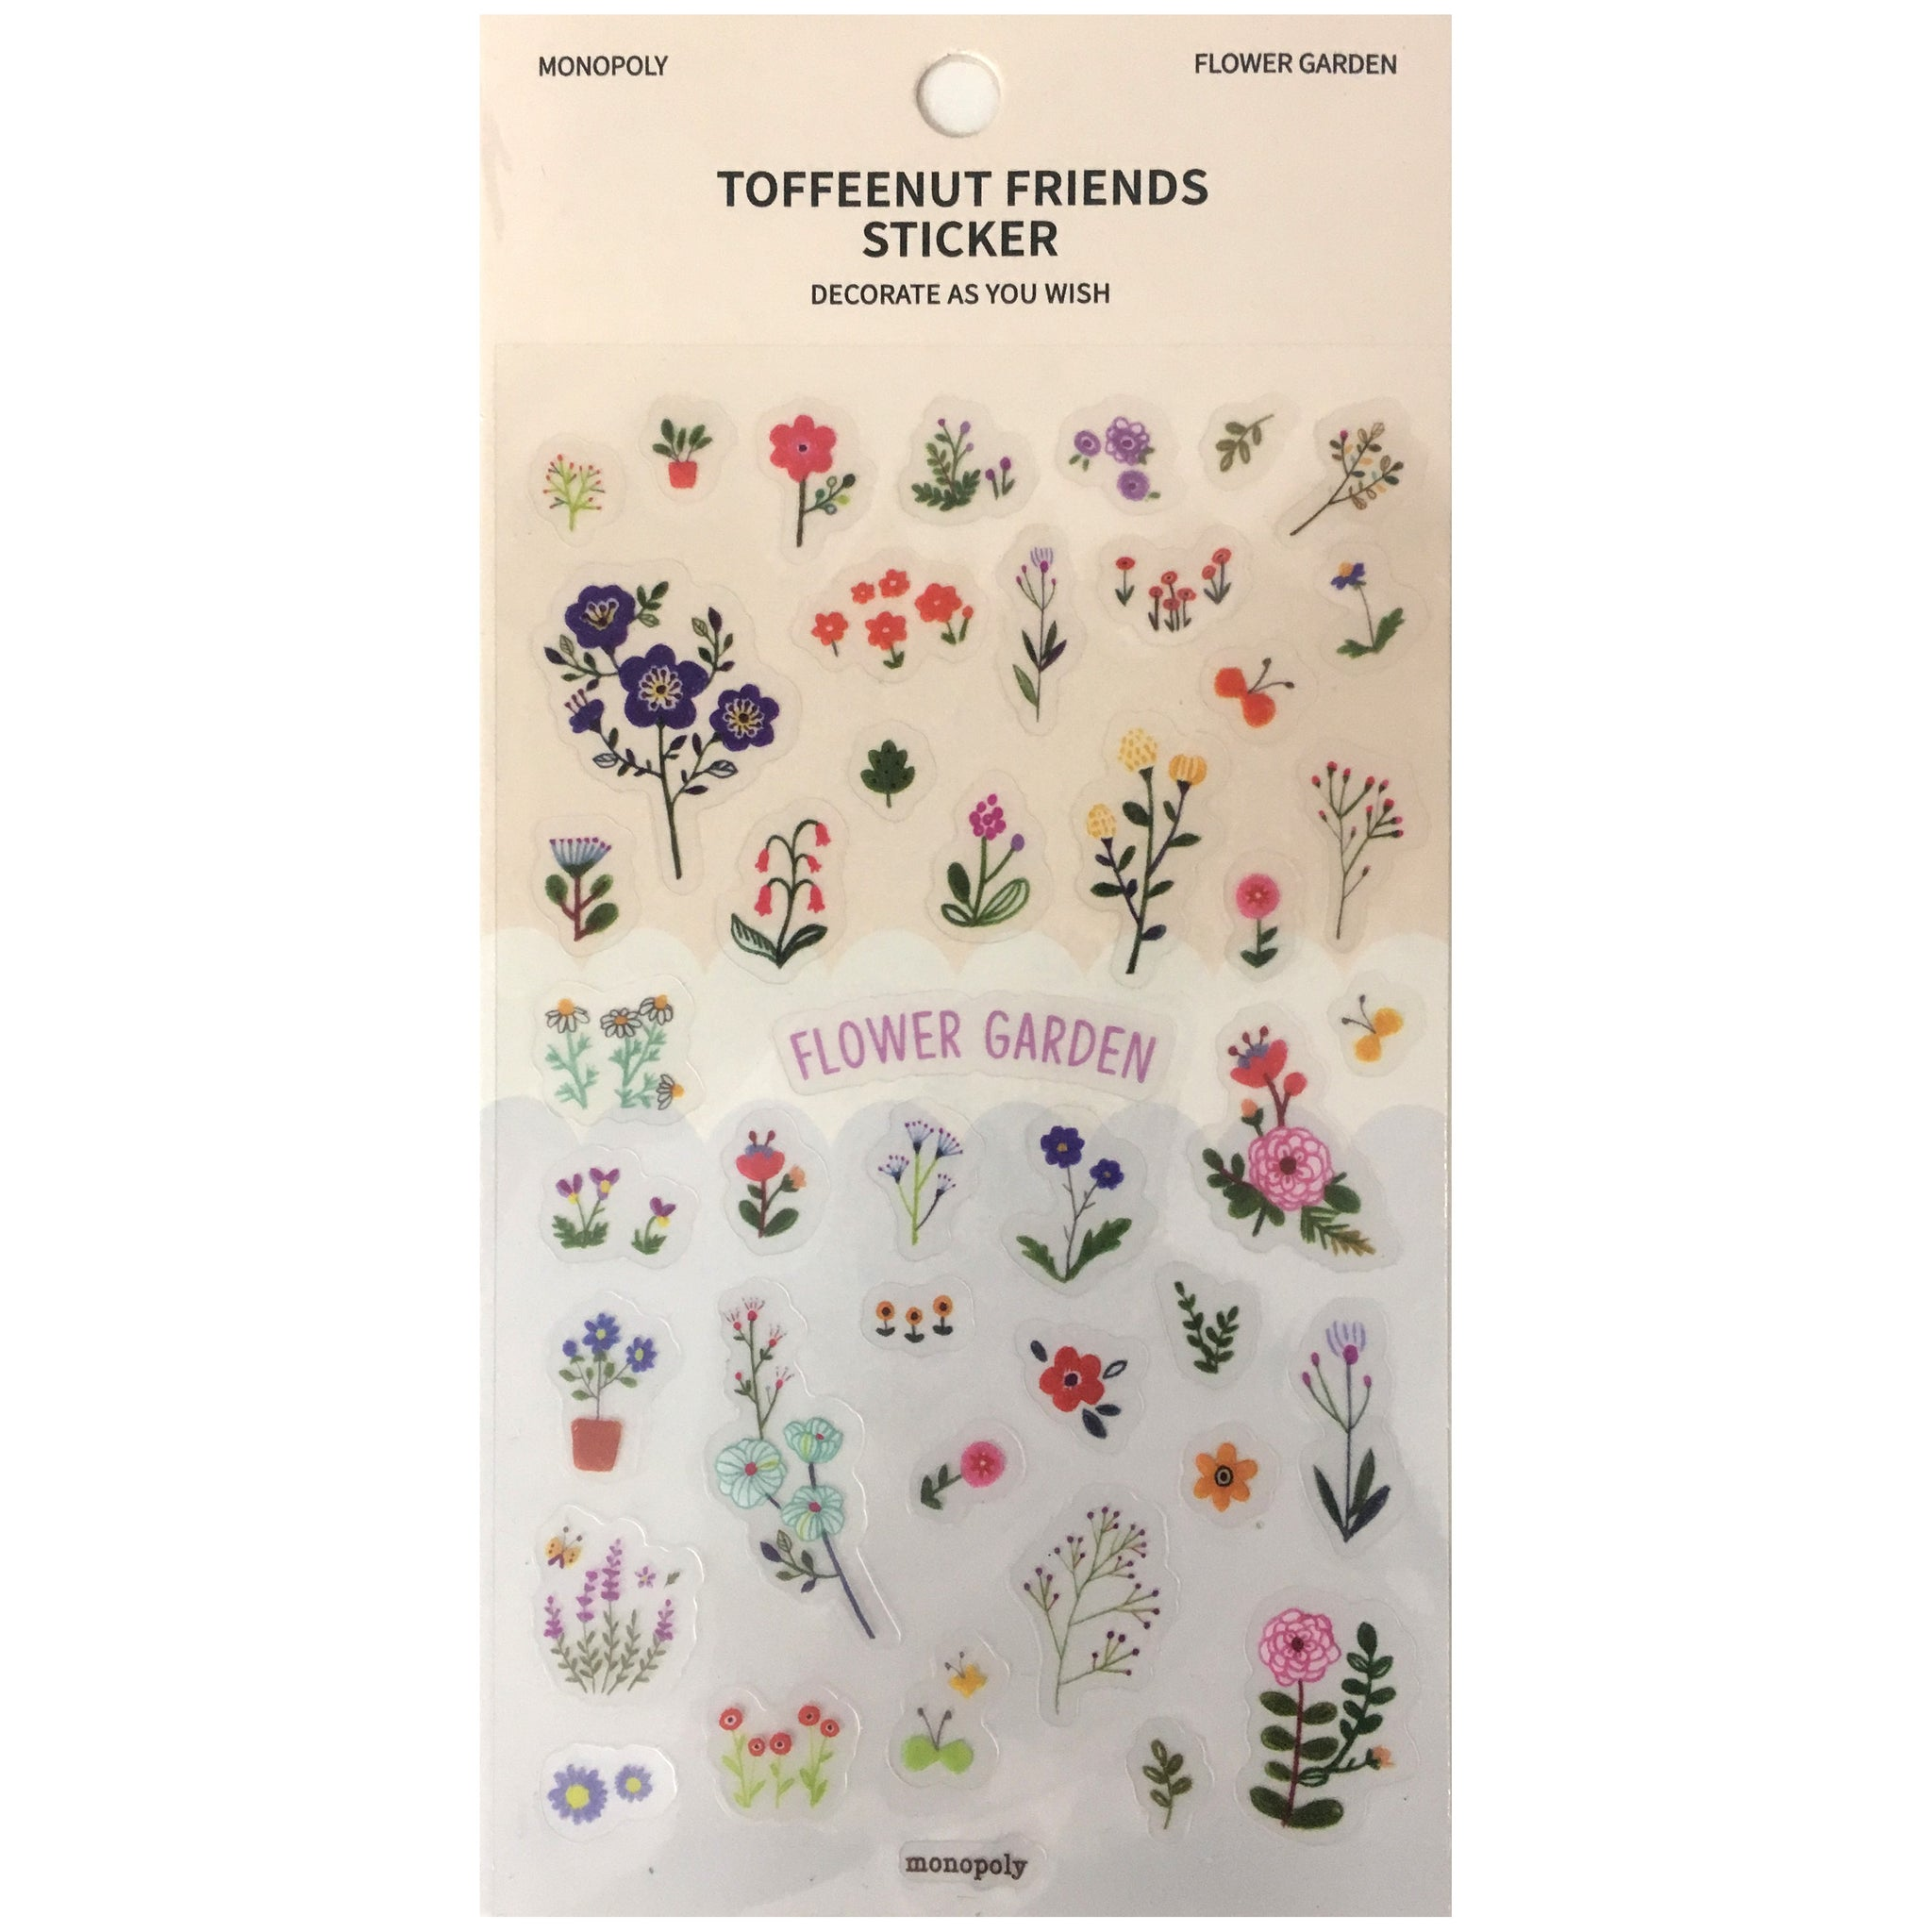 Toffeenut Friends 'Flower Garden' Stickers